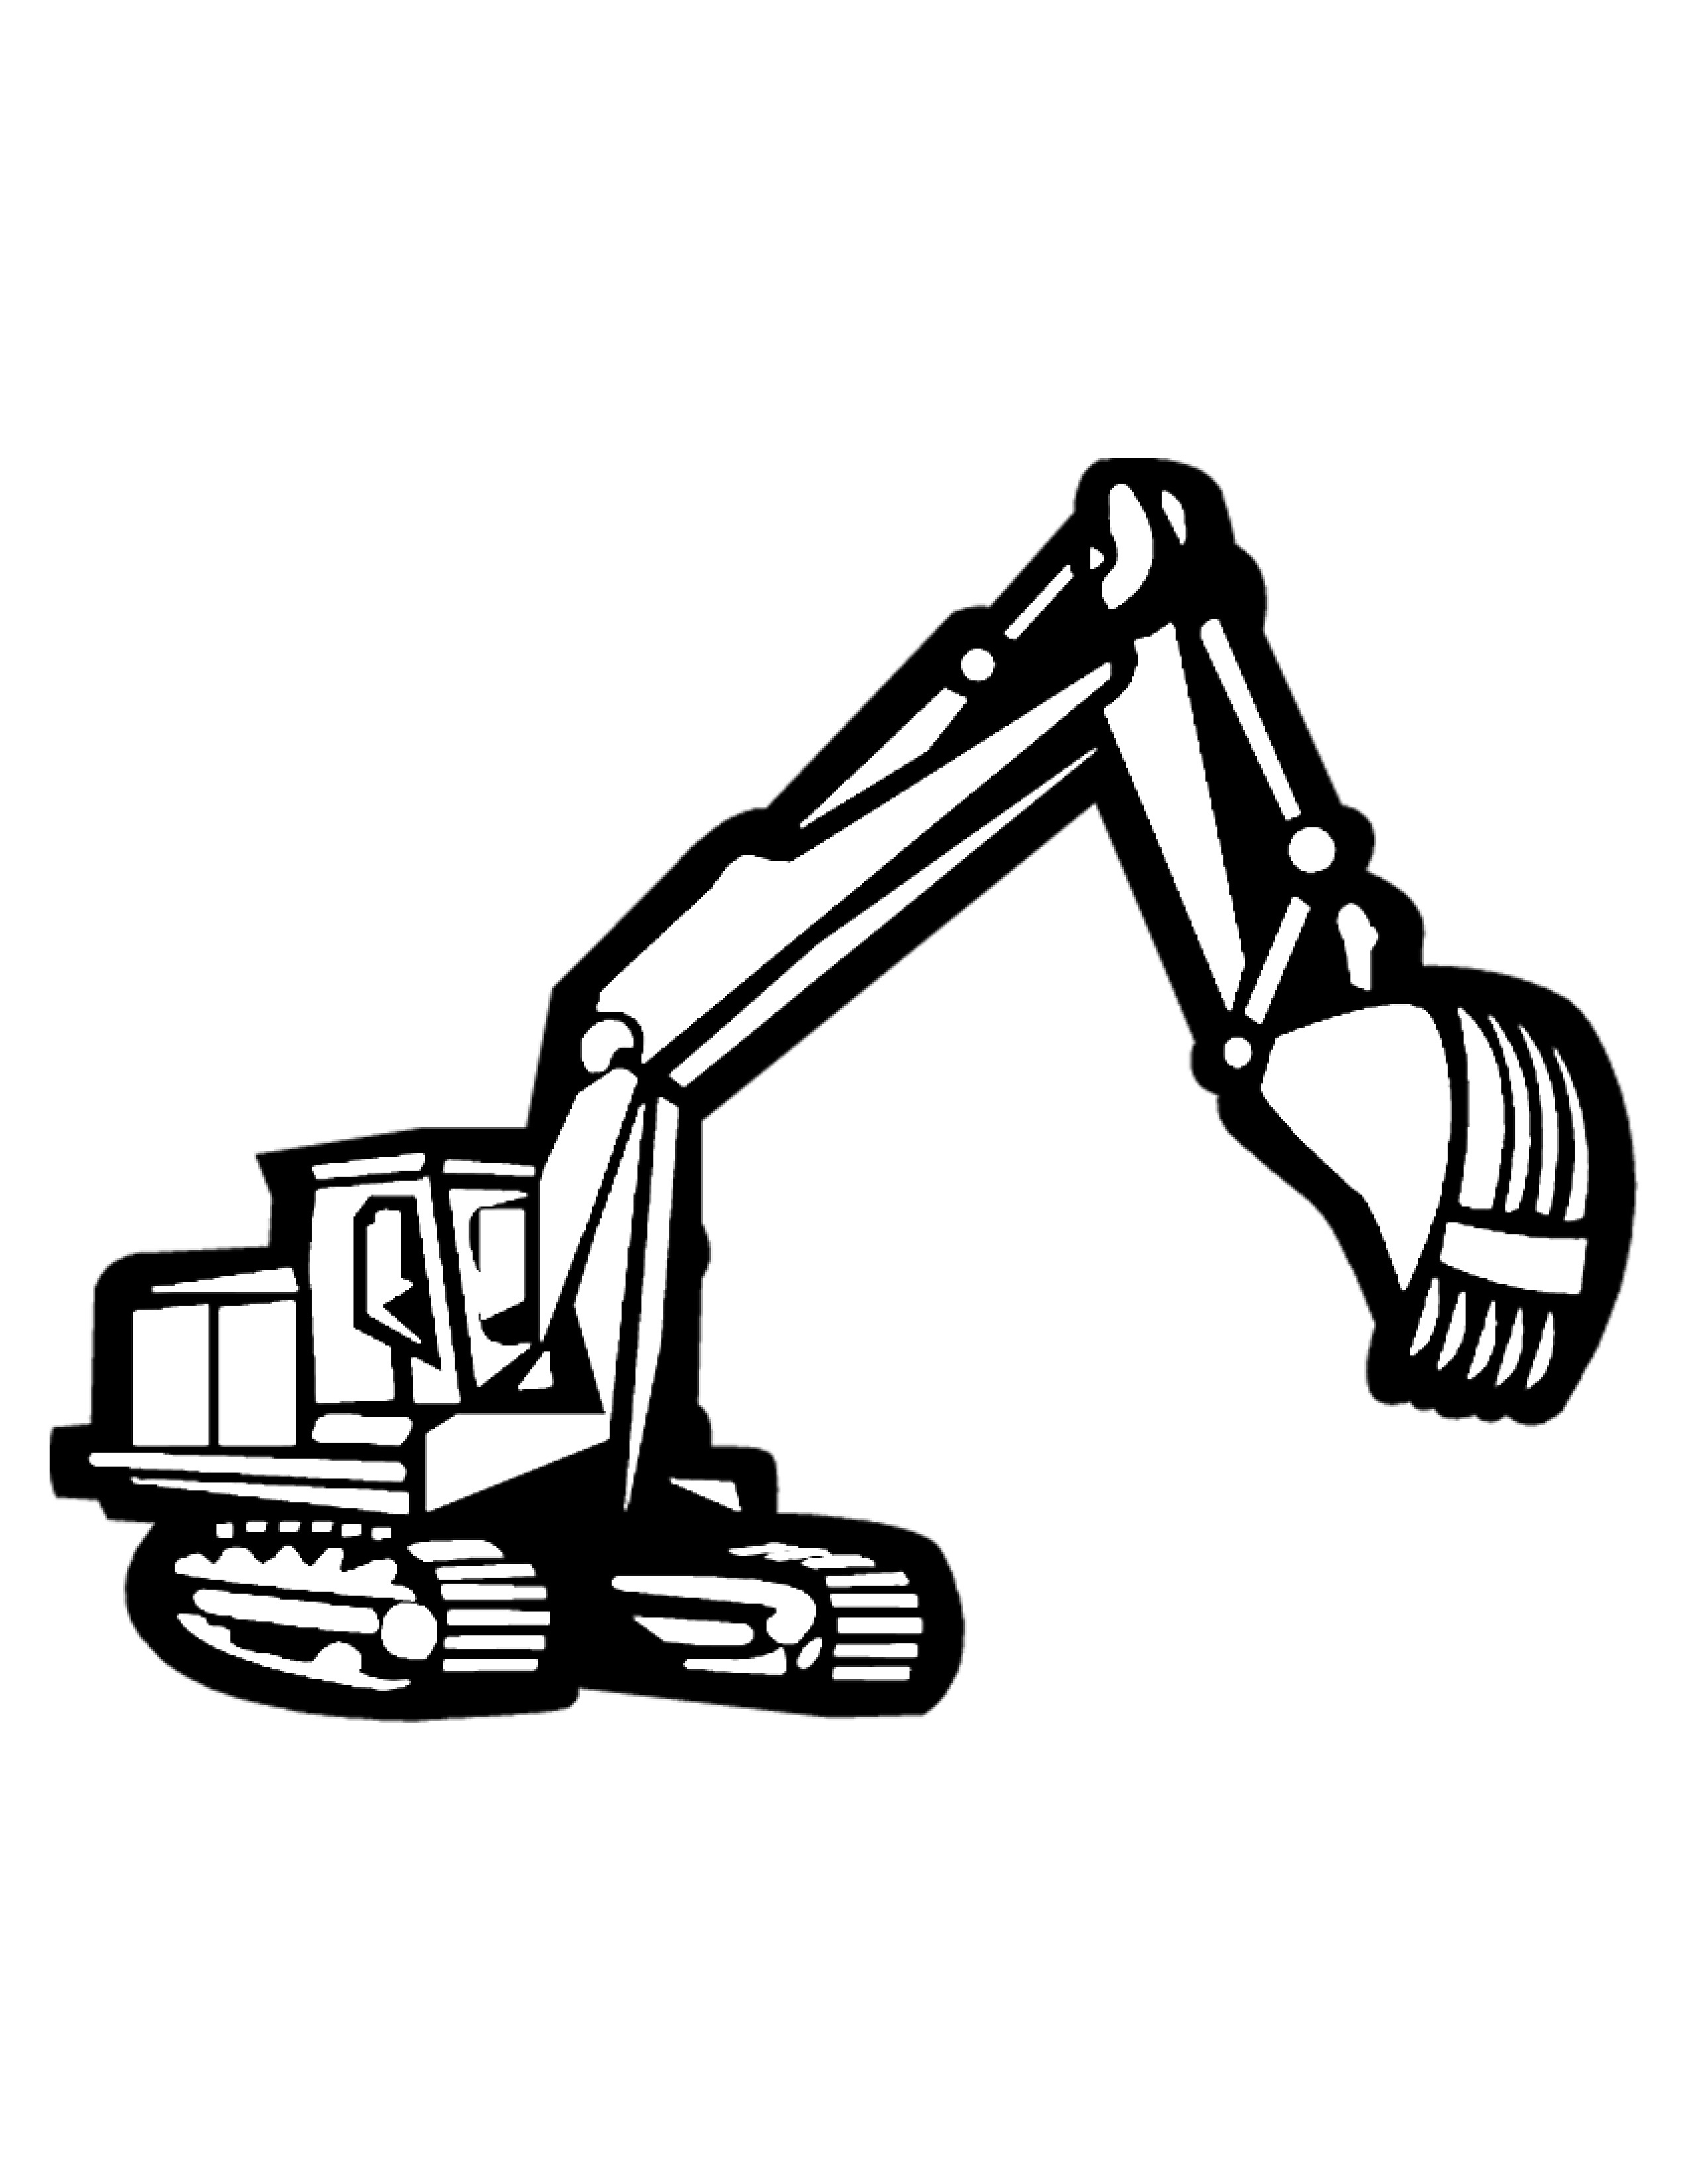 Drawing at getdrawings com. Backhoe clipart clip art royalty free stock